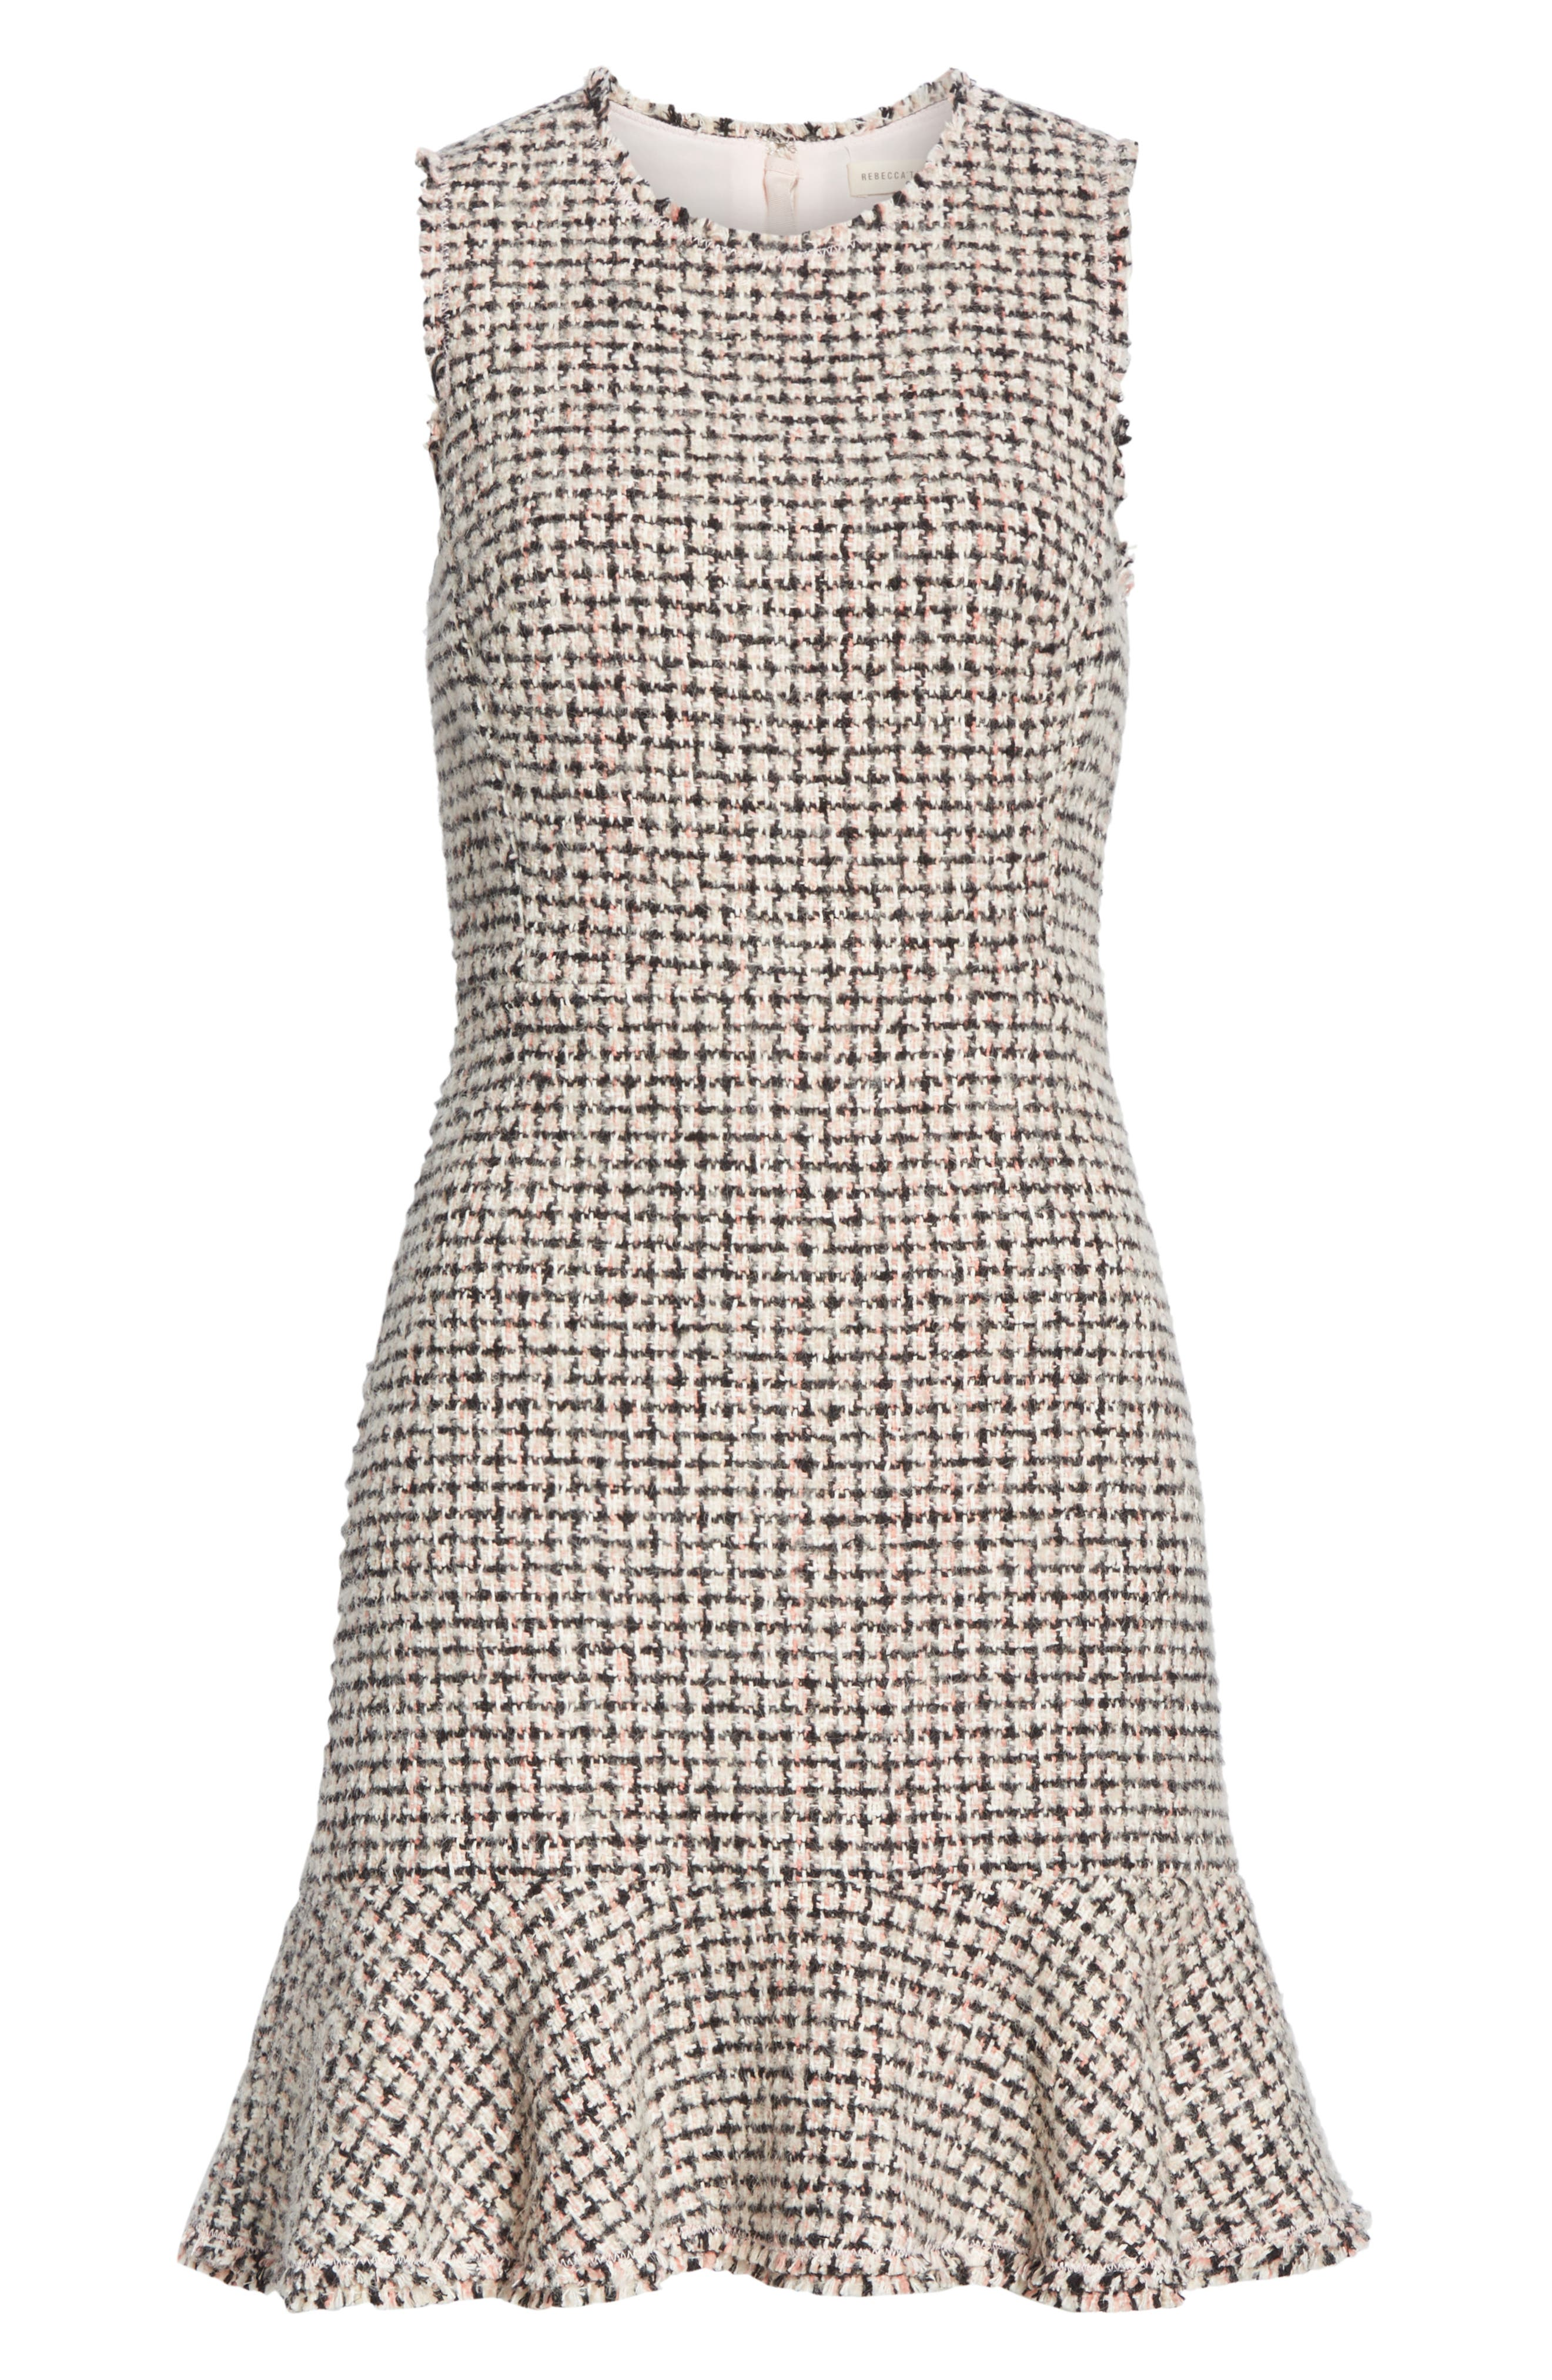 REBECCA TAYLOR, Houndstooth Tweed Dress, Alternate thumbnail 6, color, BLACK/ PINK COMBO